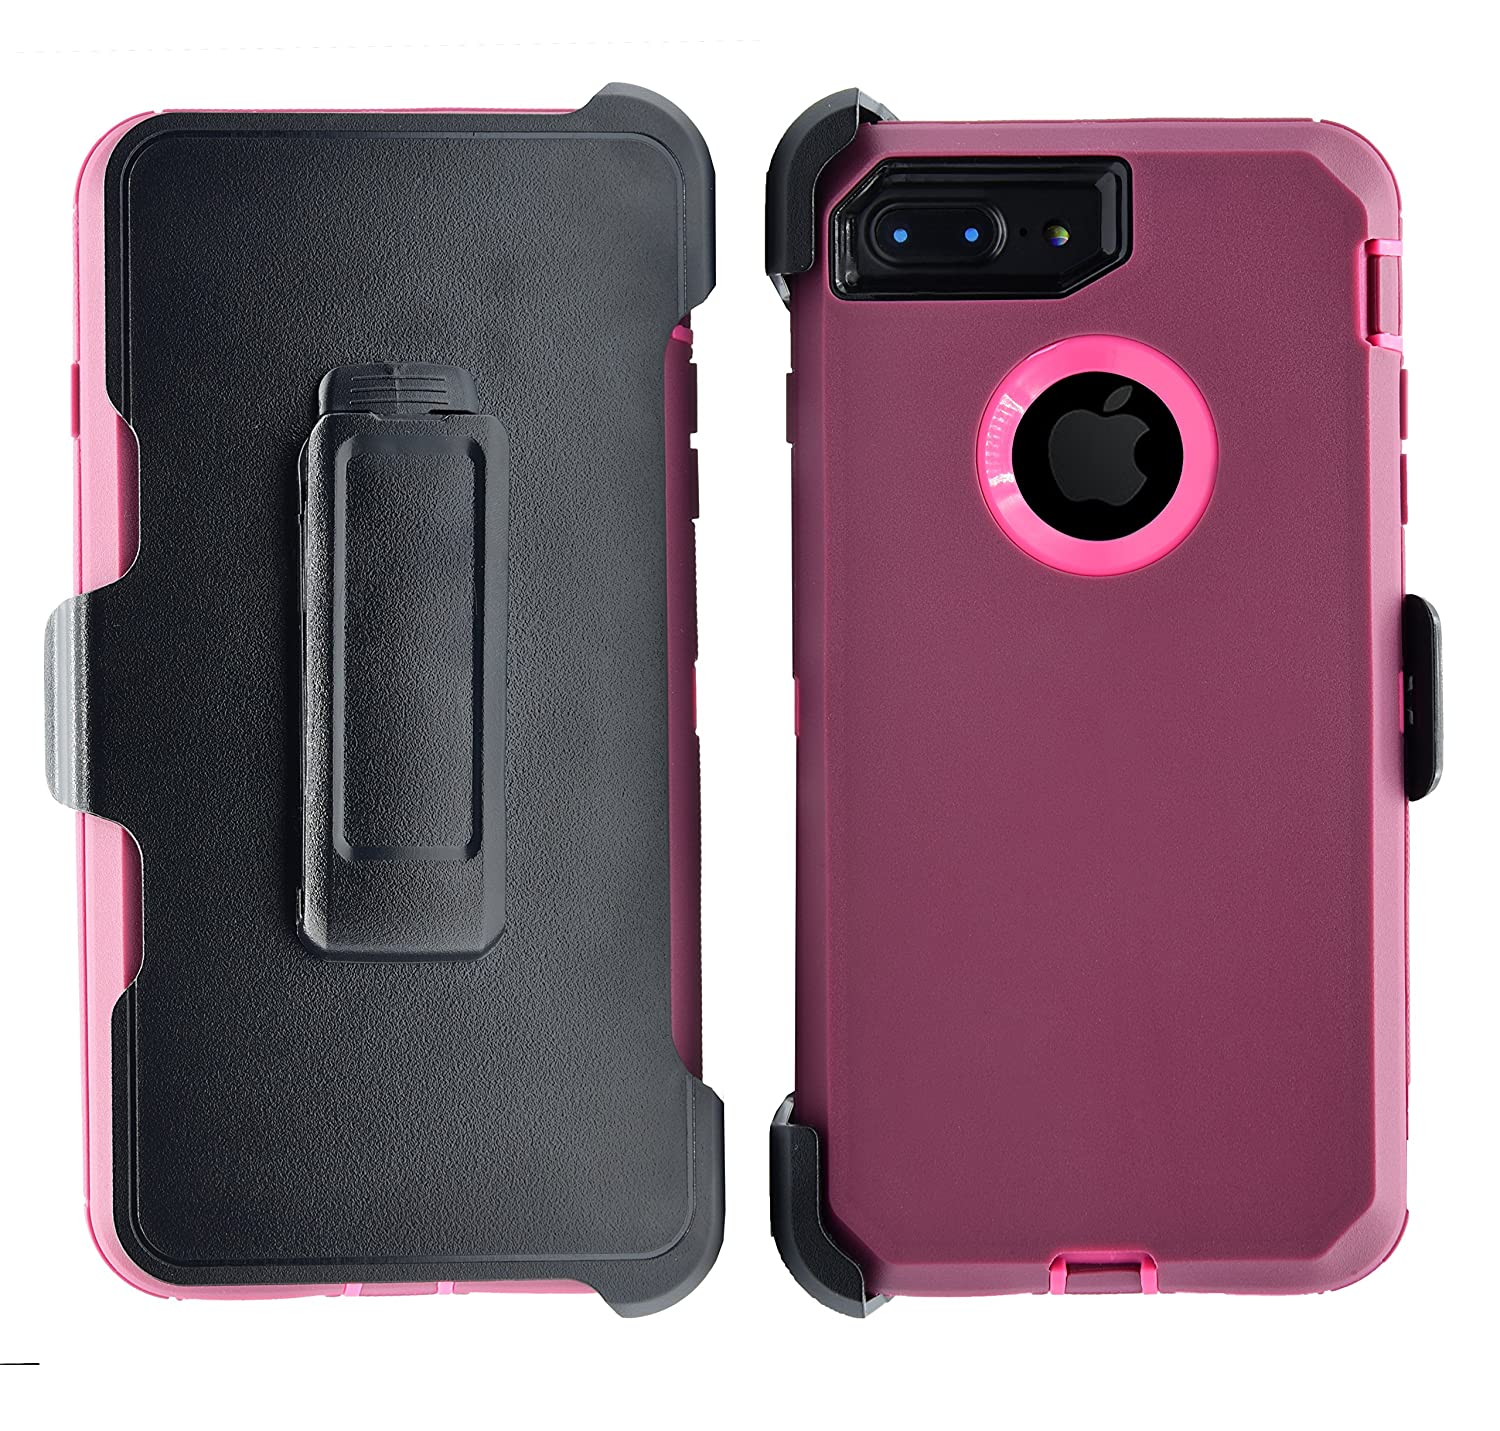 AlphaCell Cover compatible with iPhone 7 Plus / 8 Plus (ONLY) | 2-in-1 Screen Protector & Holster Case | Full Body Military Grade Protection with Carrying Belt Clip | Shock-proof Protective Spigen LifeProof Caseology Incipio Tech-21 Supcase Trianium Obliq